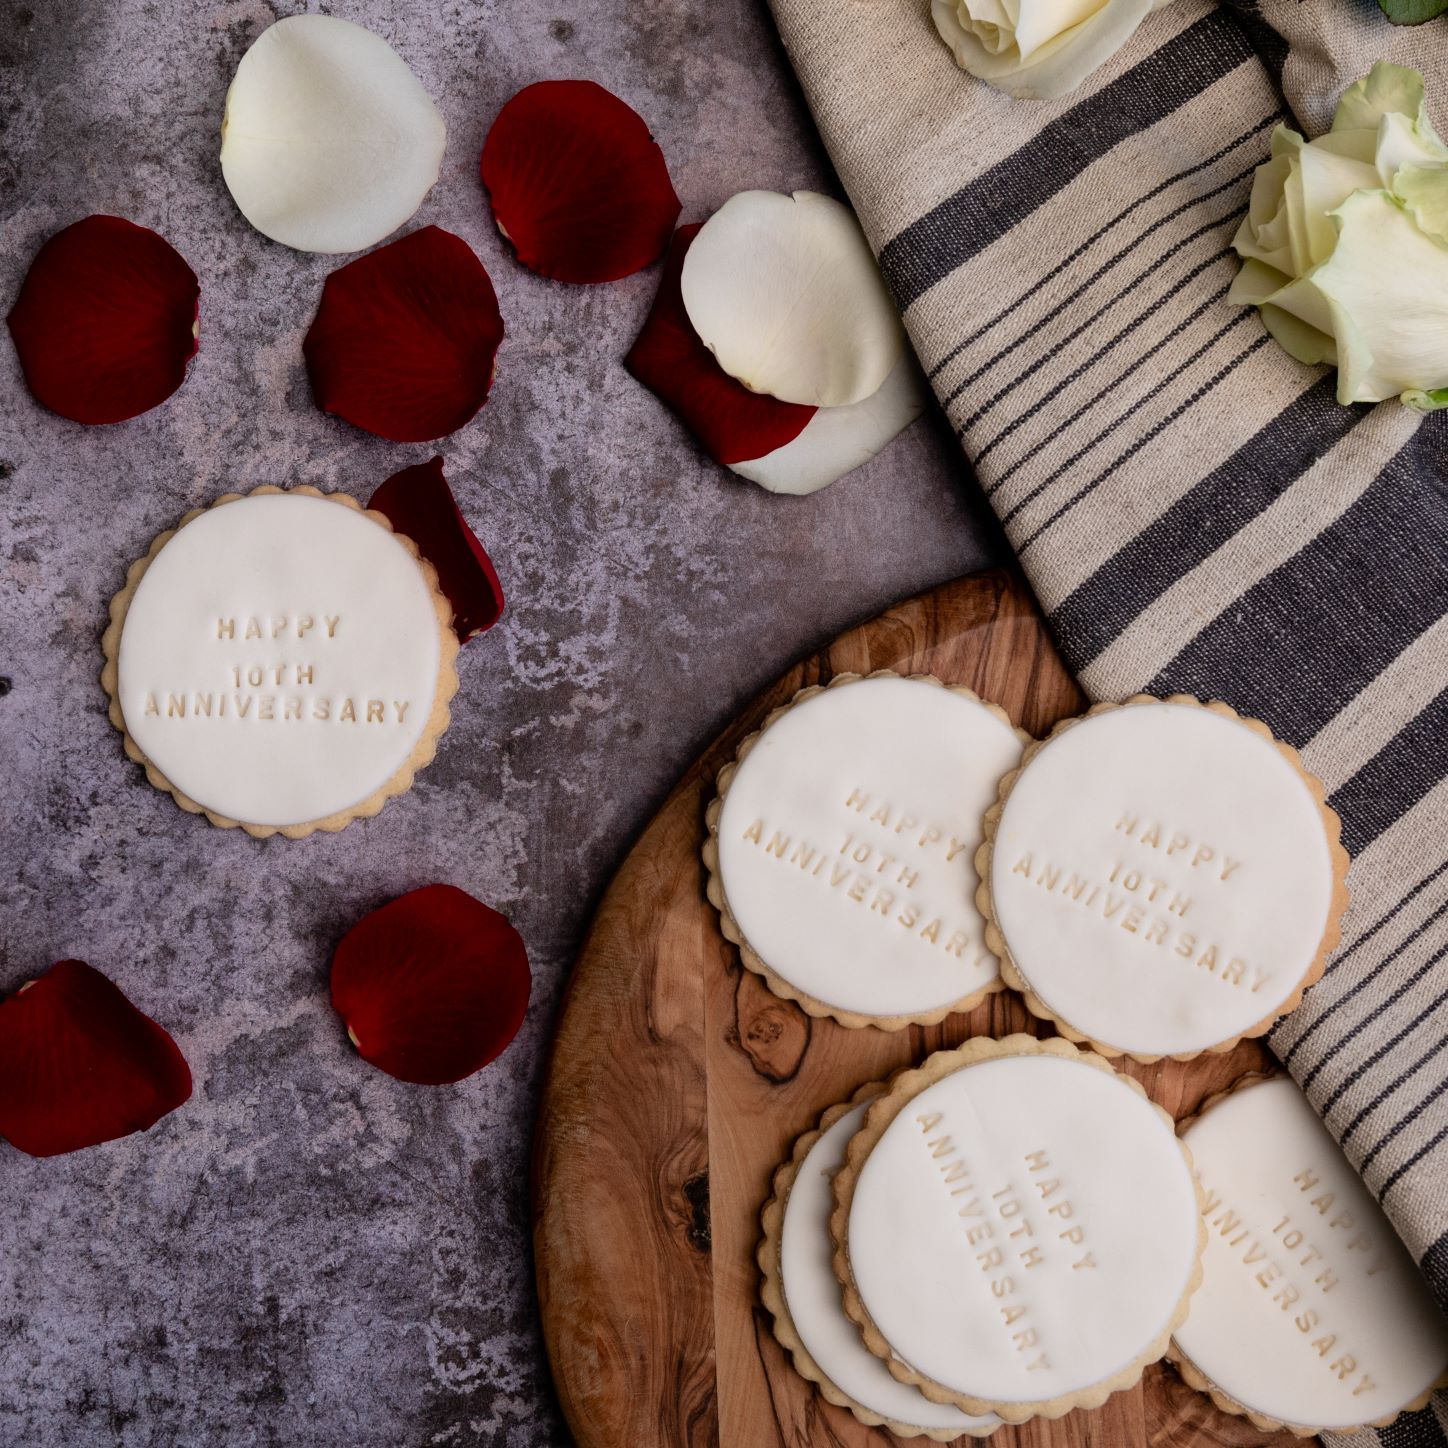 iced anniversary biscuits